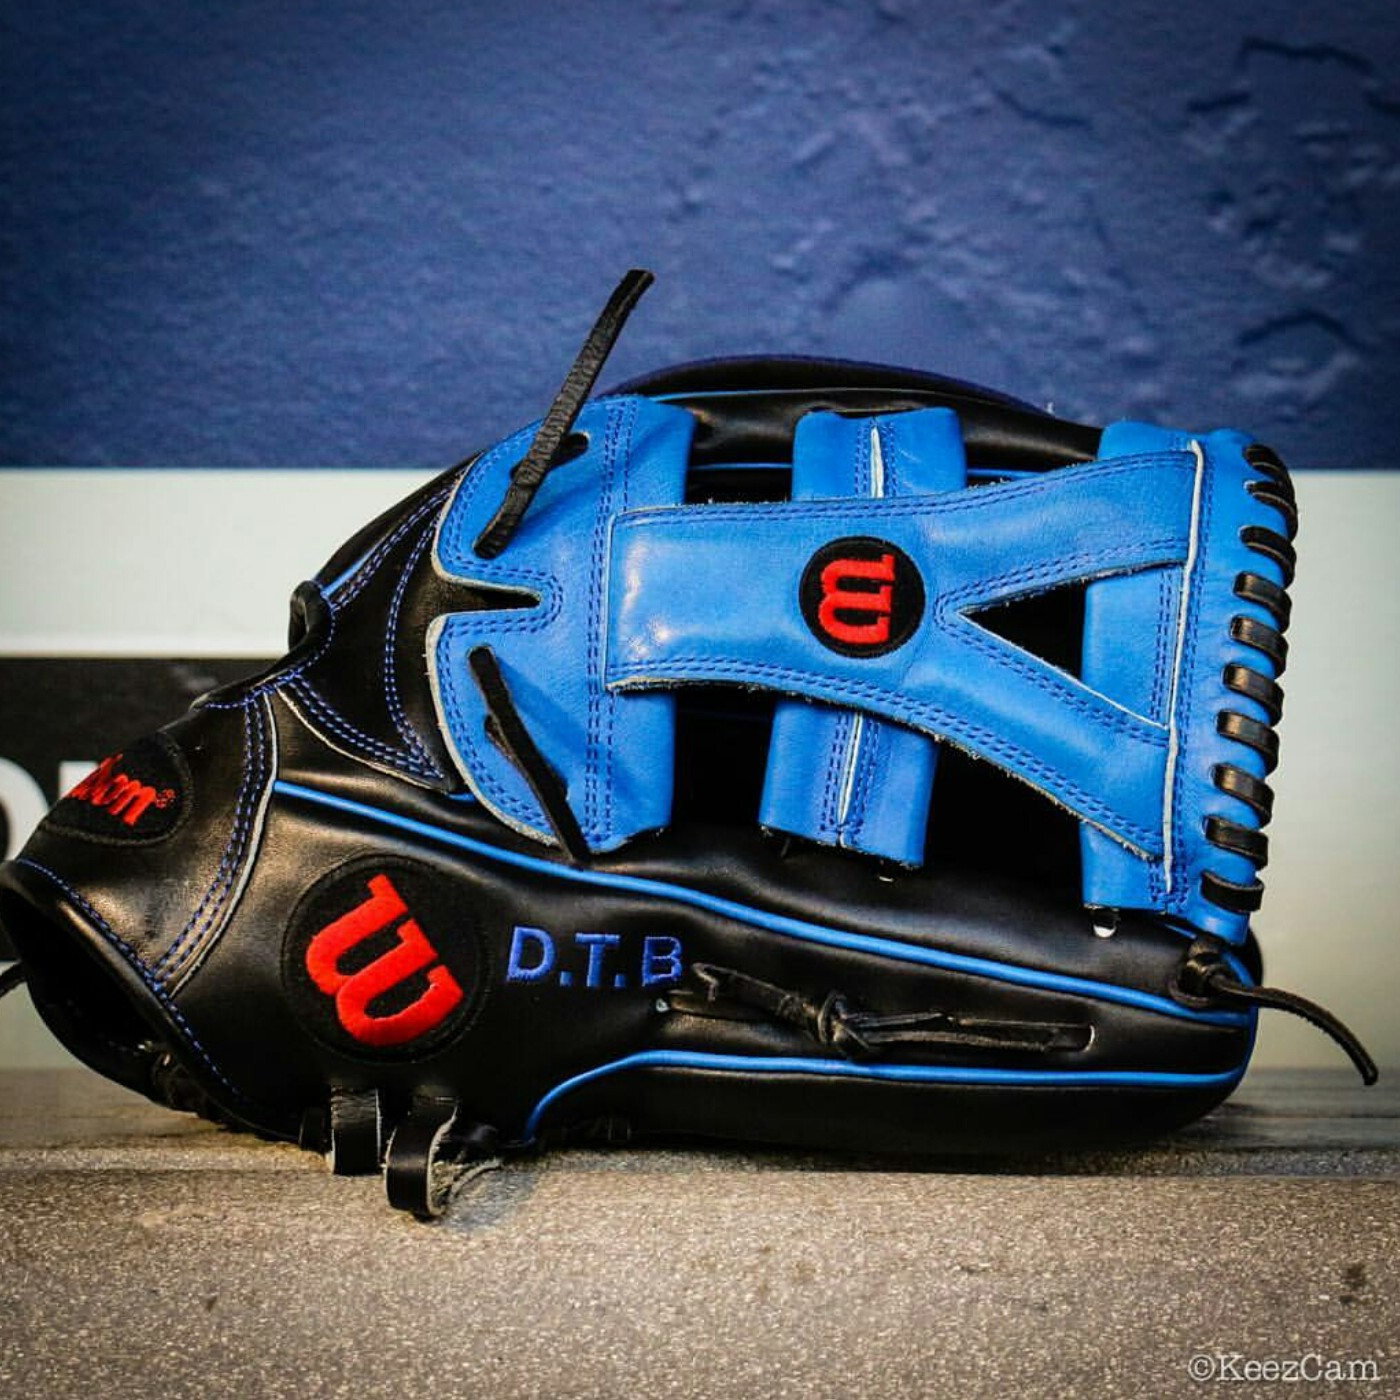 9c85a777a Franklin Sports What Pros Wear Starling Marte S Franklin Cfx Pro Batting  What  Pros Wear Yasiel Puig s